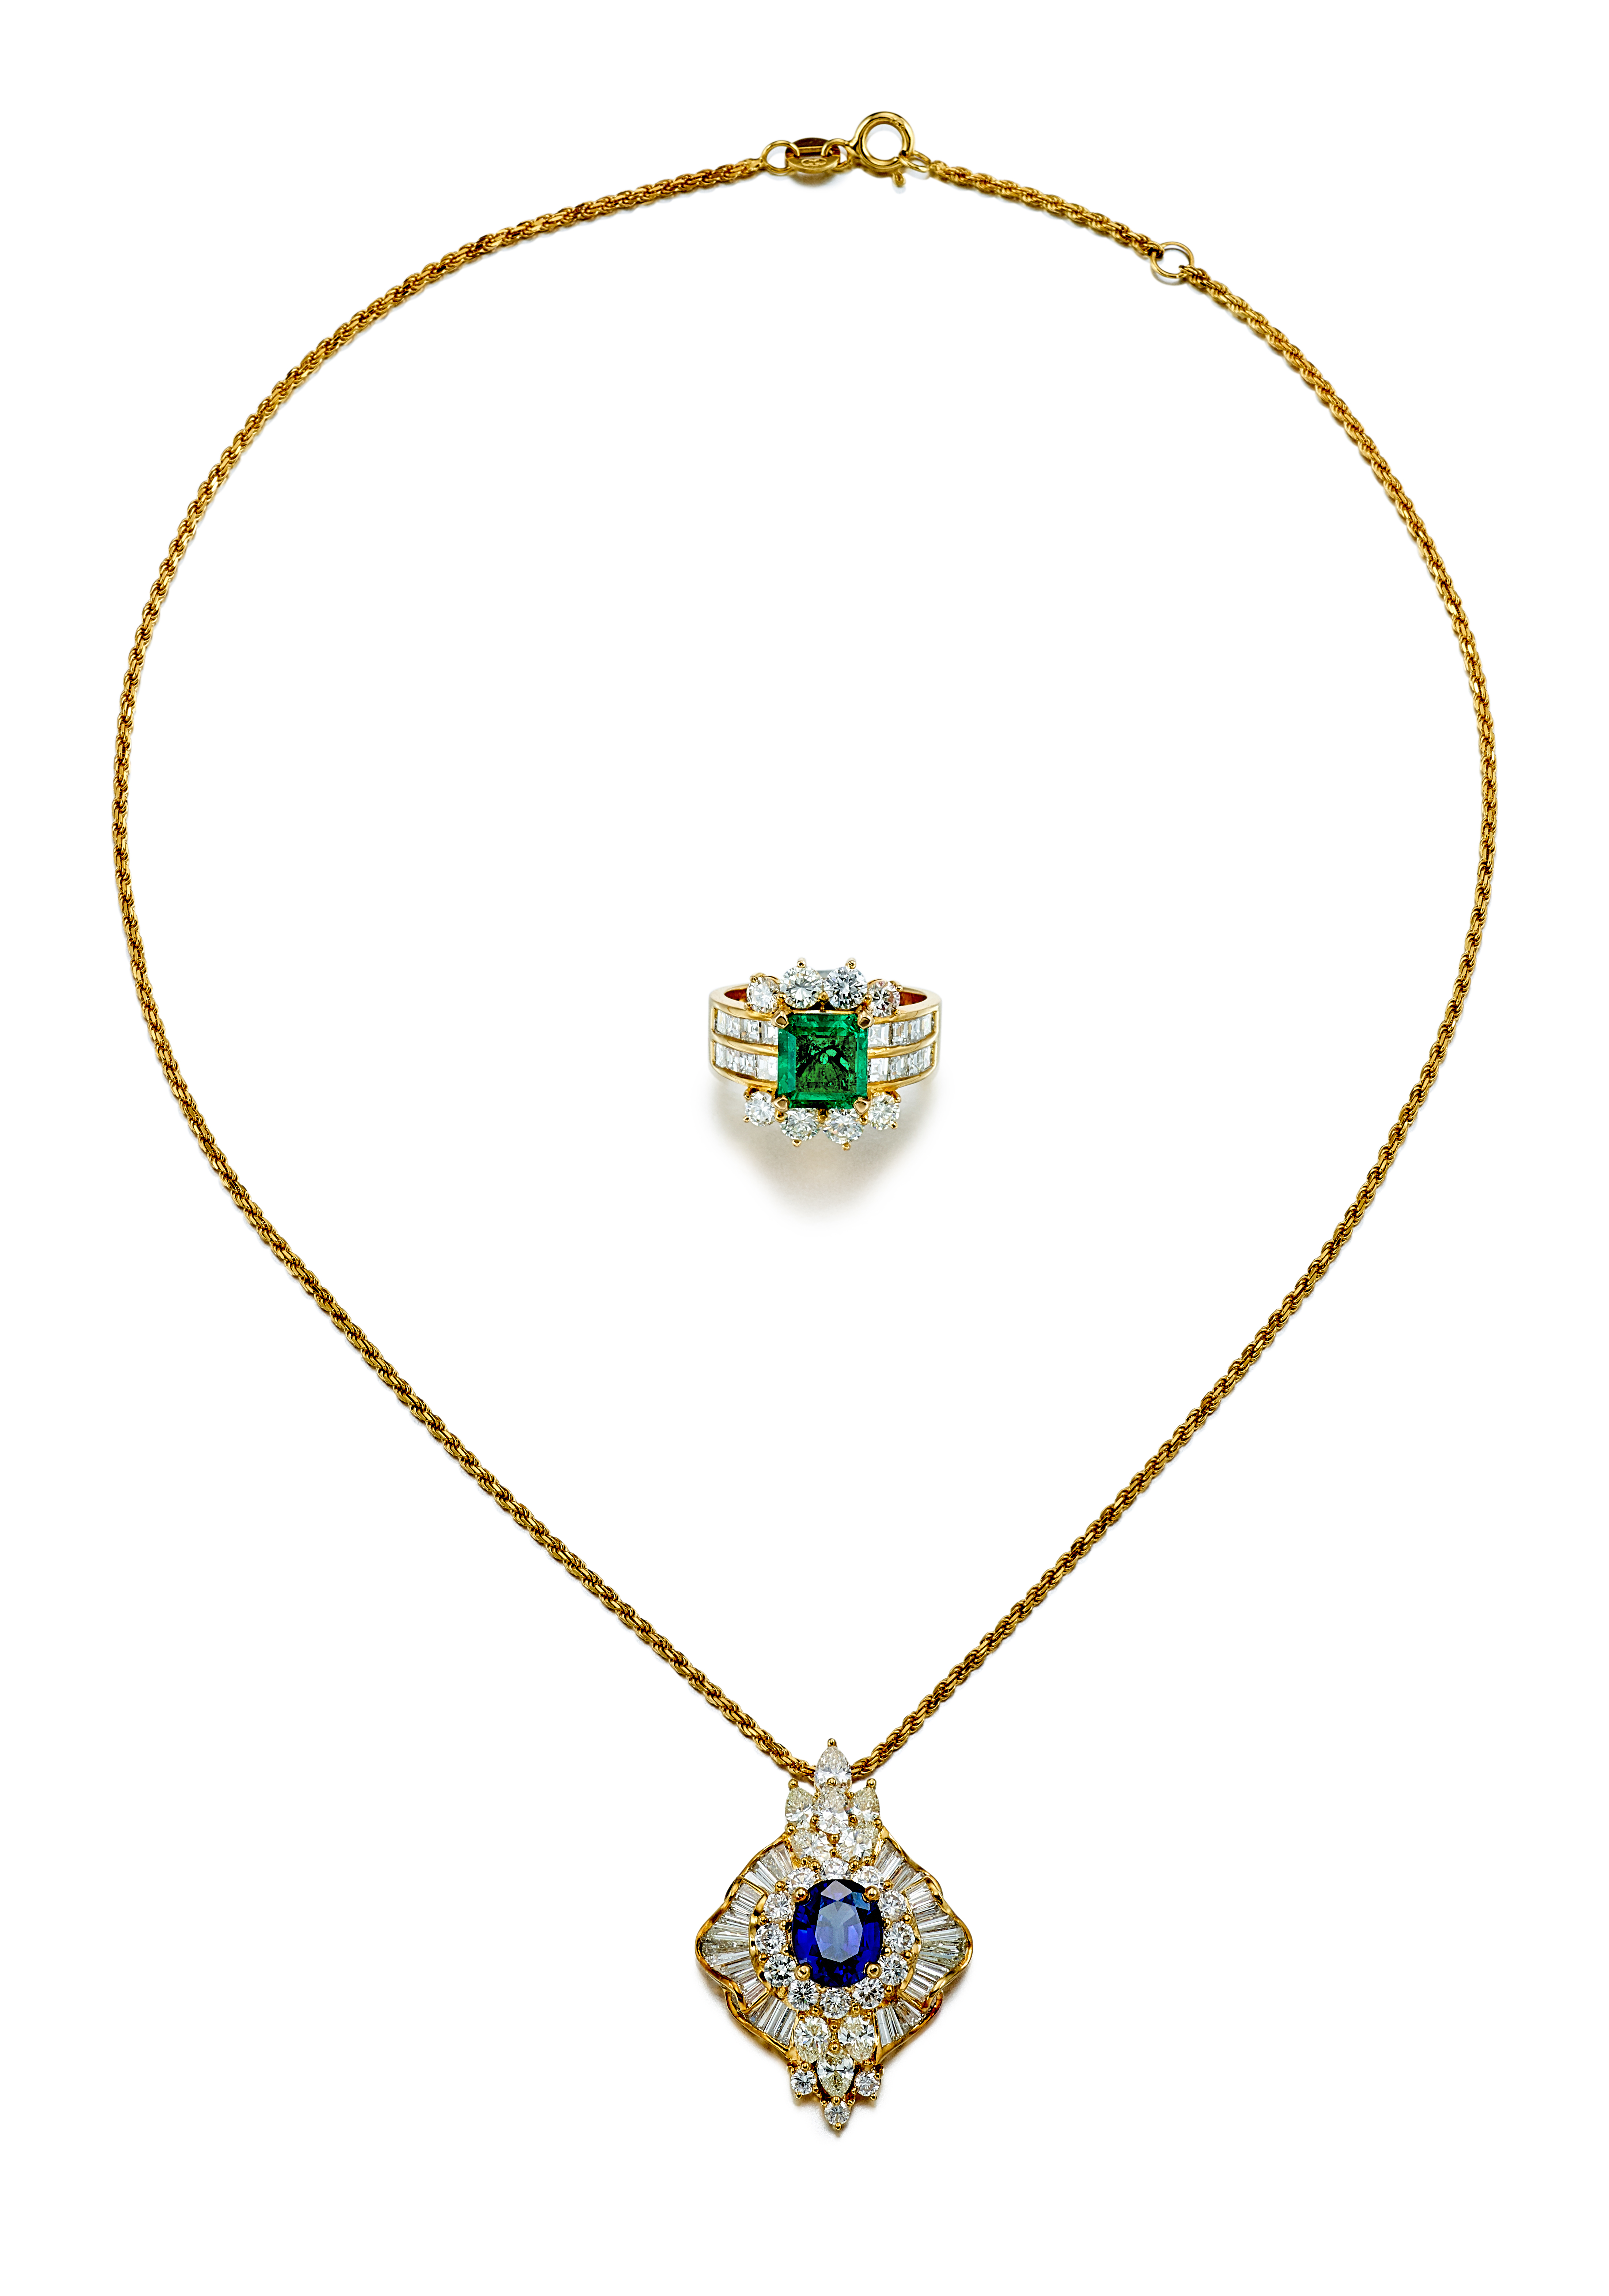 View full screen - View 1 of Lot 9189.  EMERALD AND DIAMOND RING; AND SAPPHIRE AND DIAMOND PENDENT NECKLACE   祖母綠 配 鑽石 戒指; 及 藍寶石 配 鑽石 項鏈.